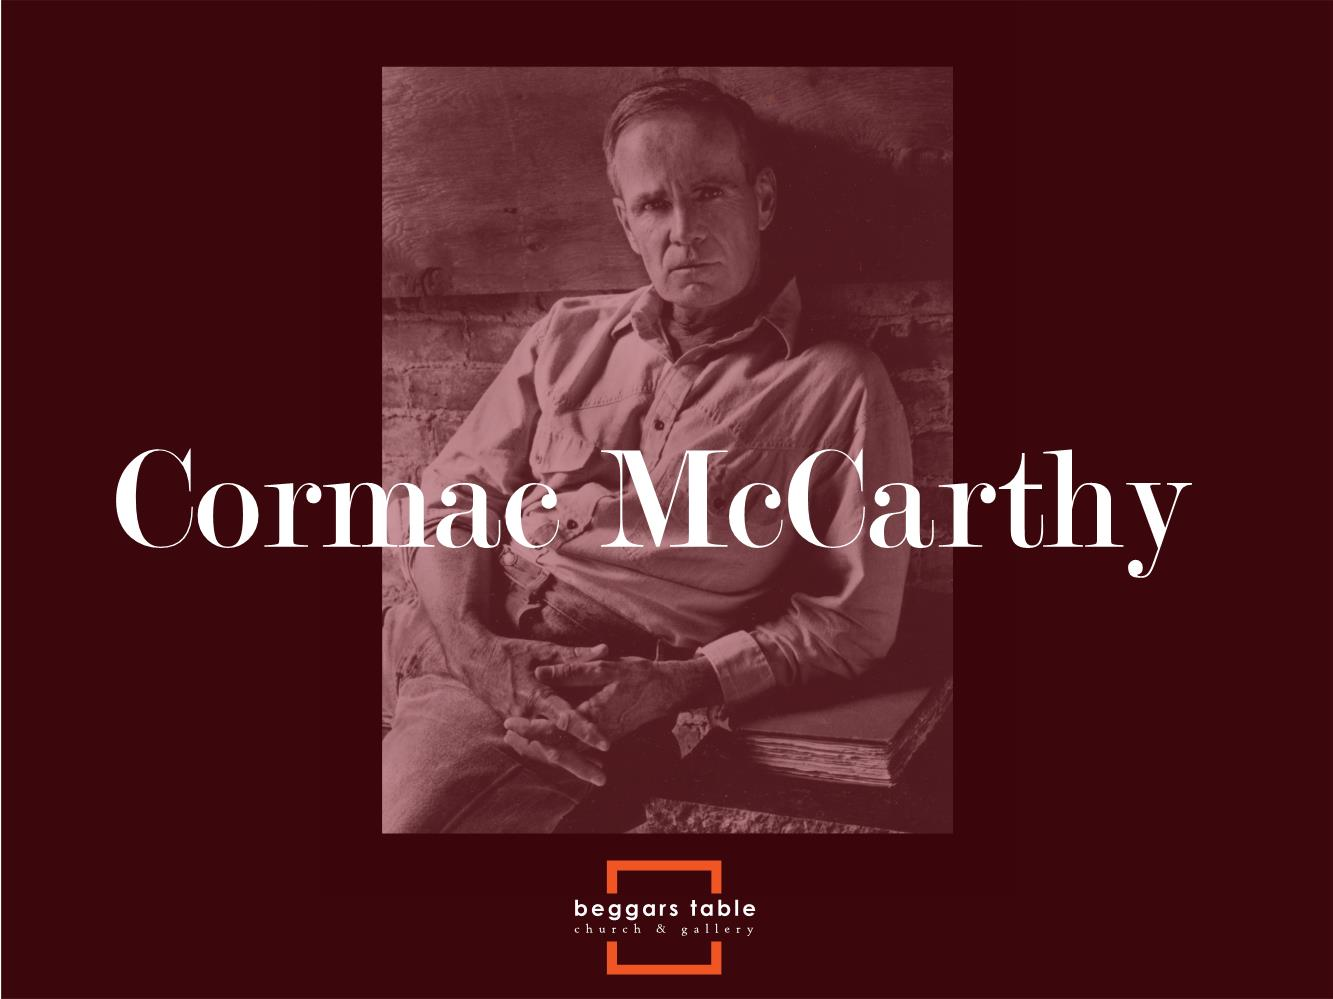 influences.mccarthy.jpg